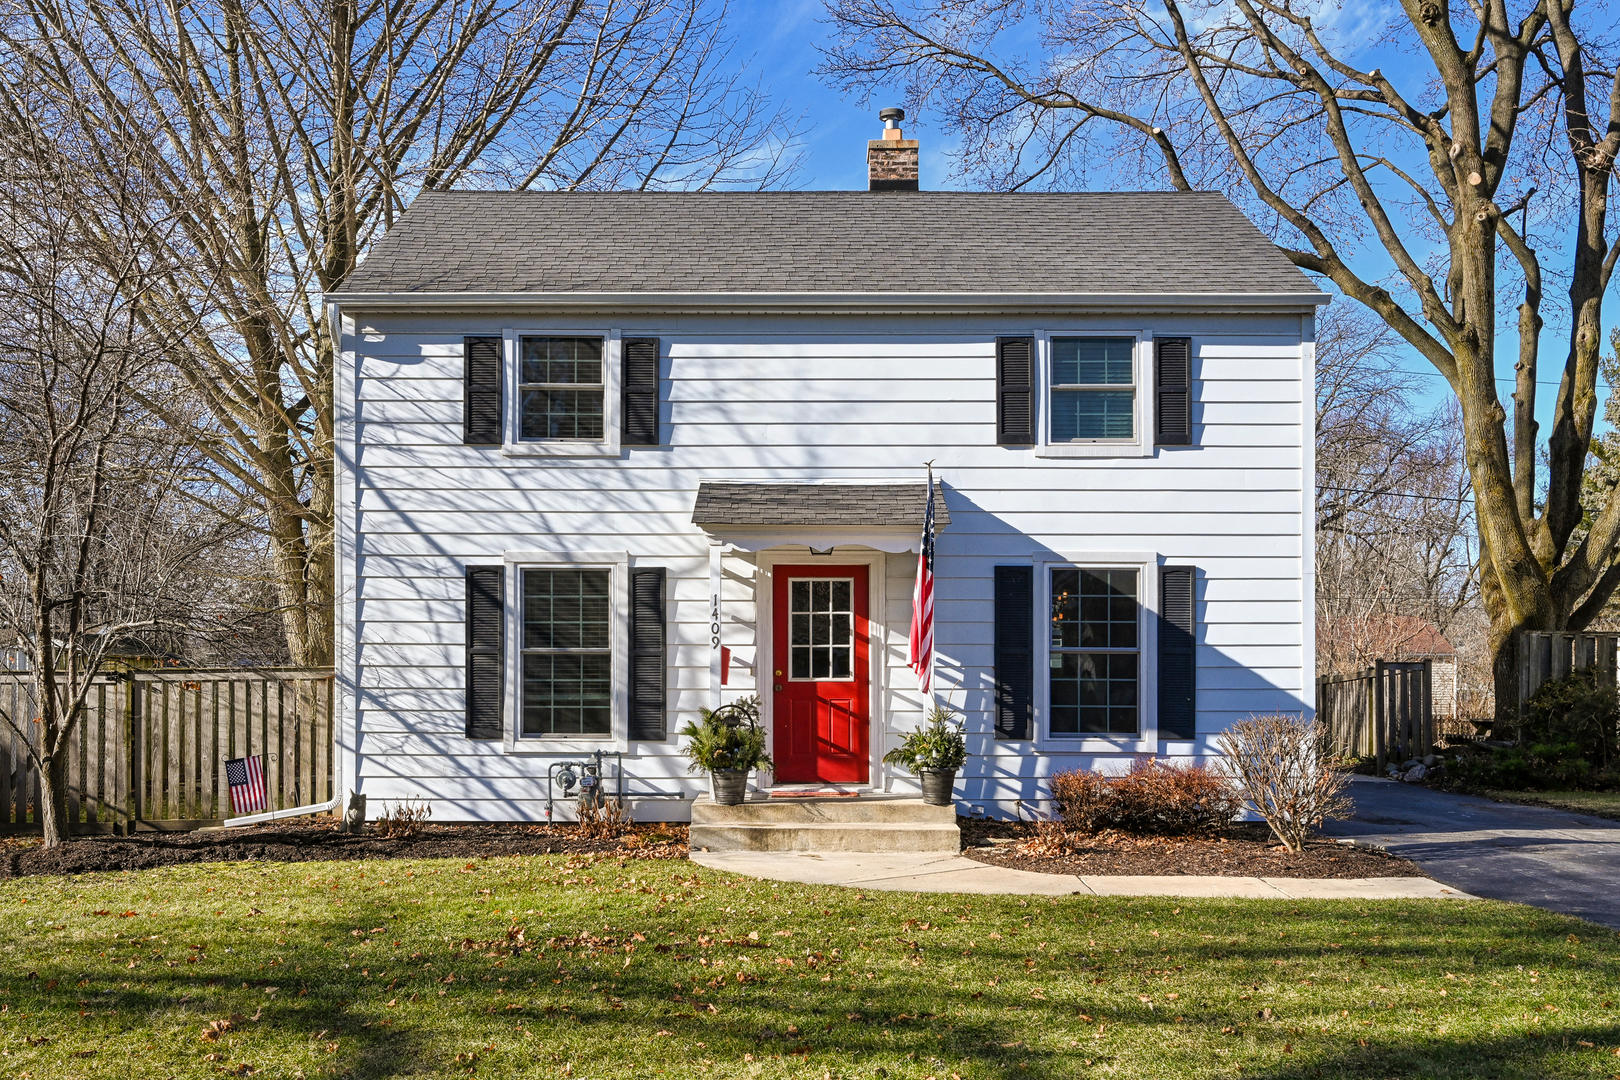 Photo for 1409 S 5th Street, St. Charles, IL 60174 (MLS # 10604123)